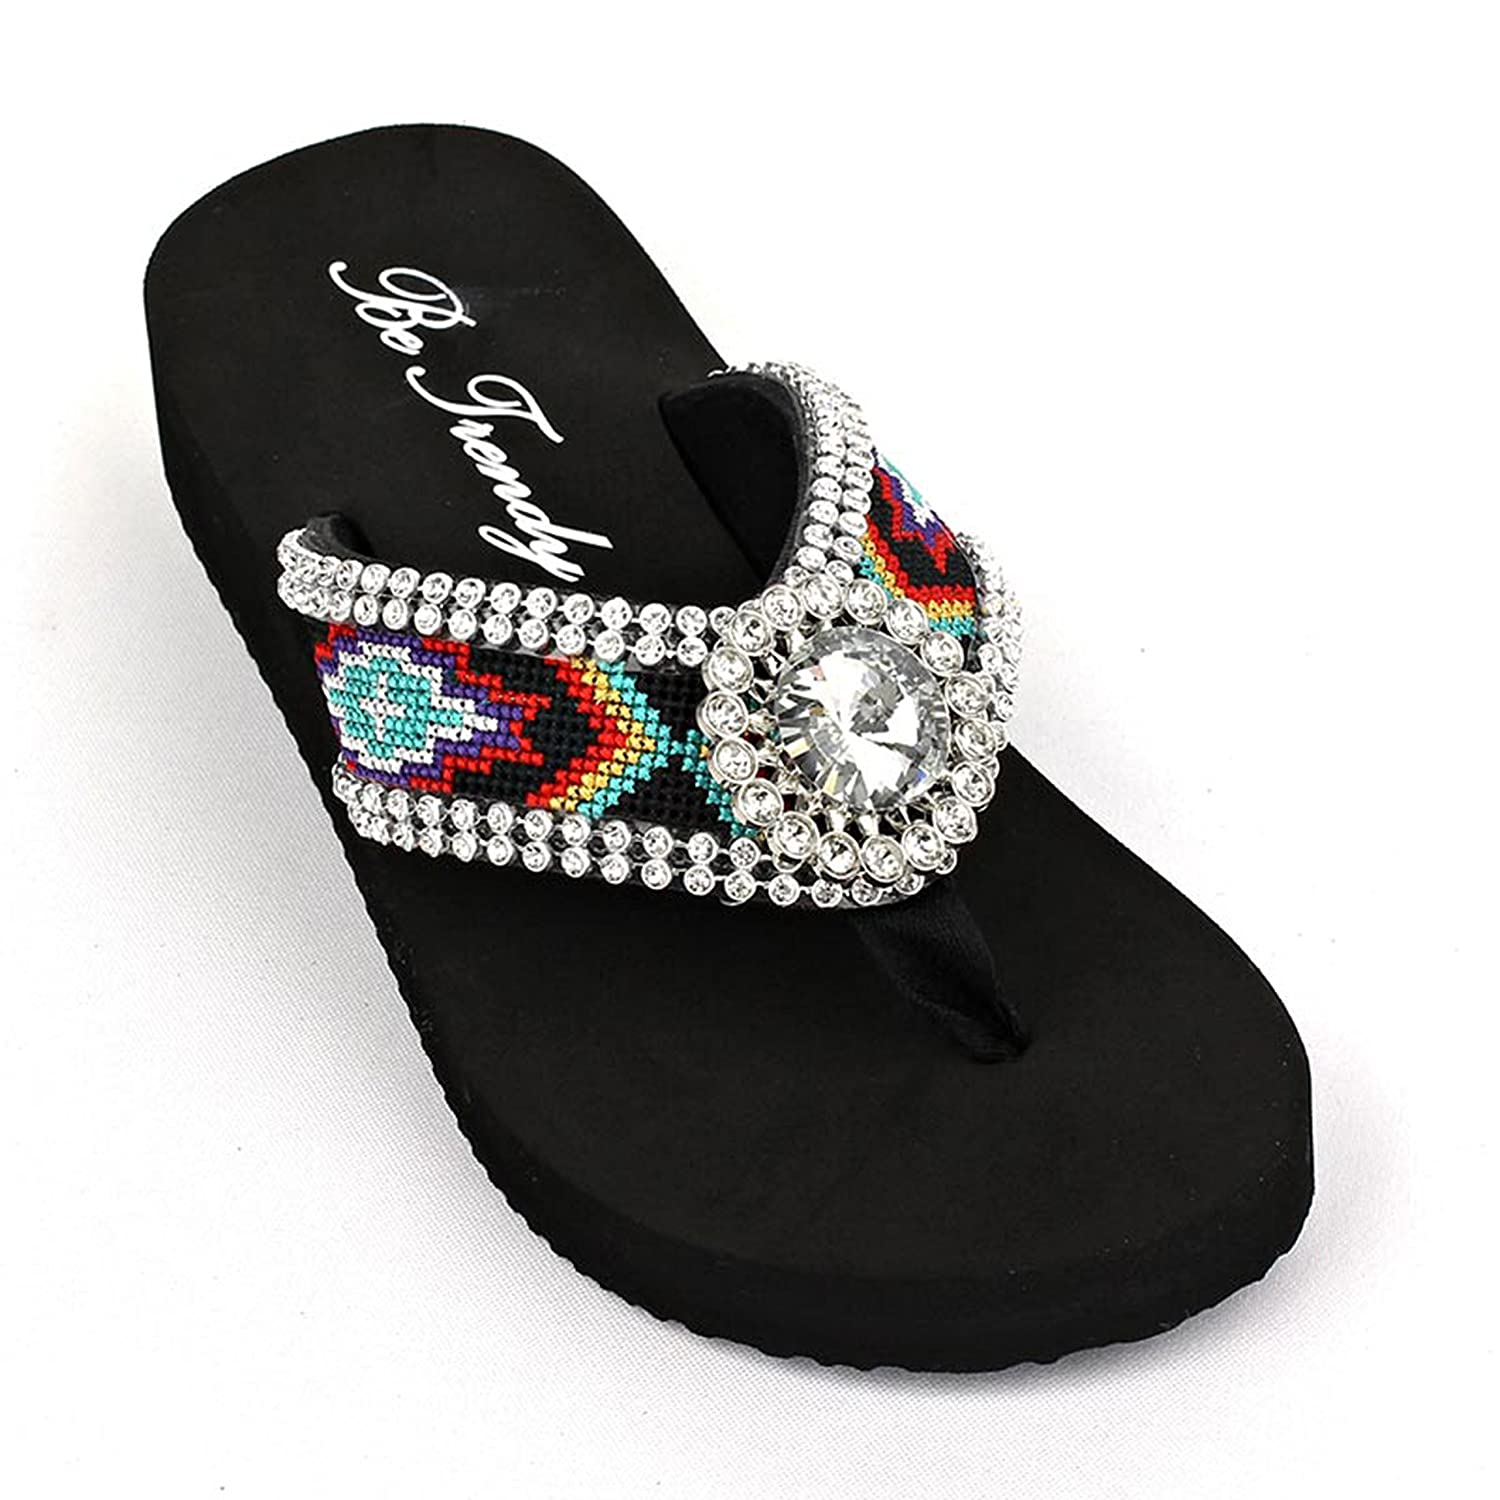 Colorful Aztec Navajo Print Rhinestone Bling Wedge Flip Flop Sandals Shoes